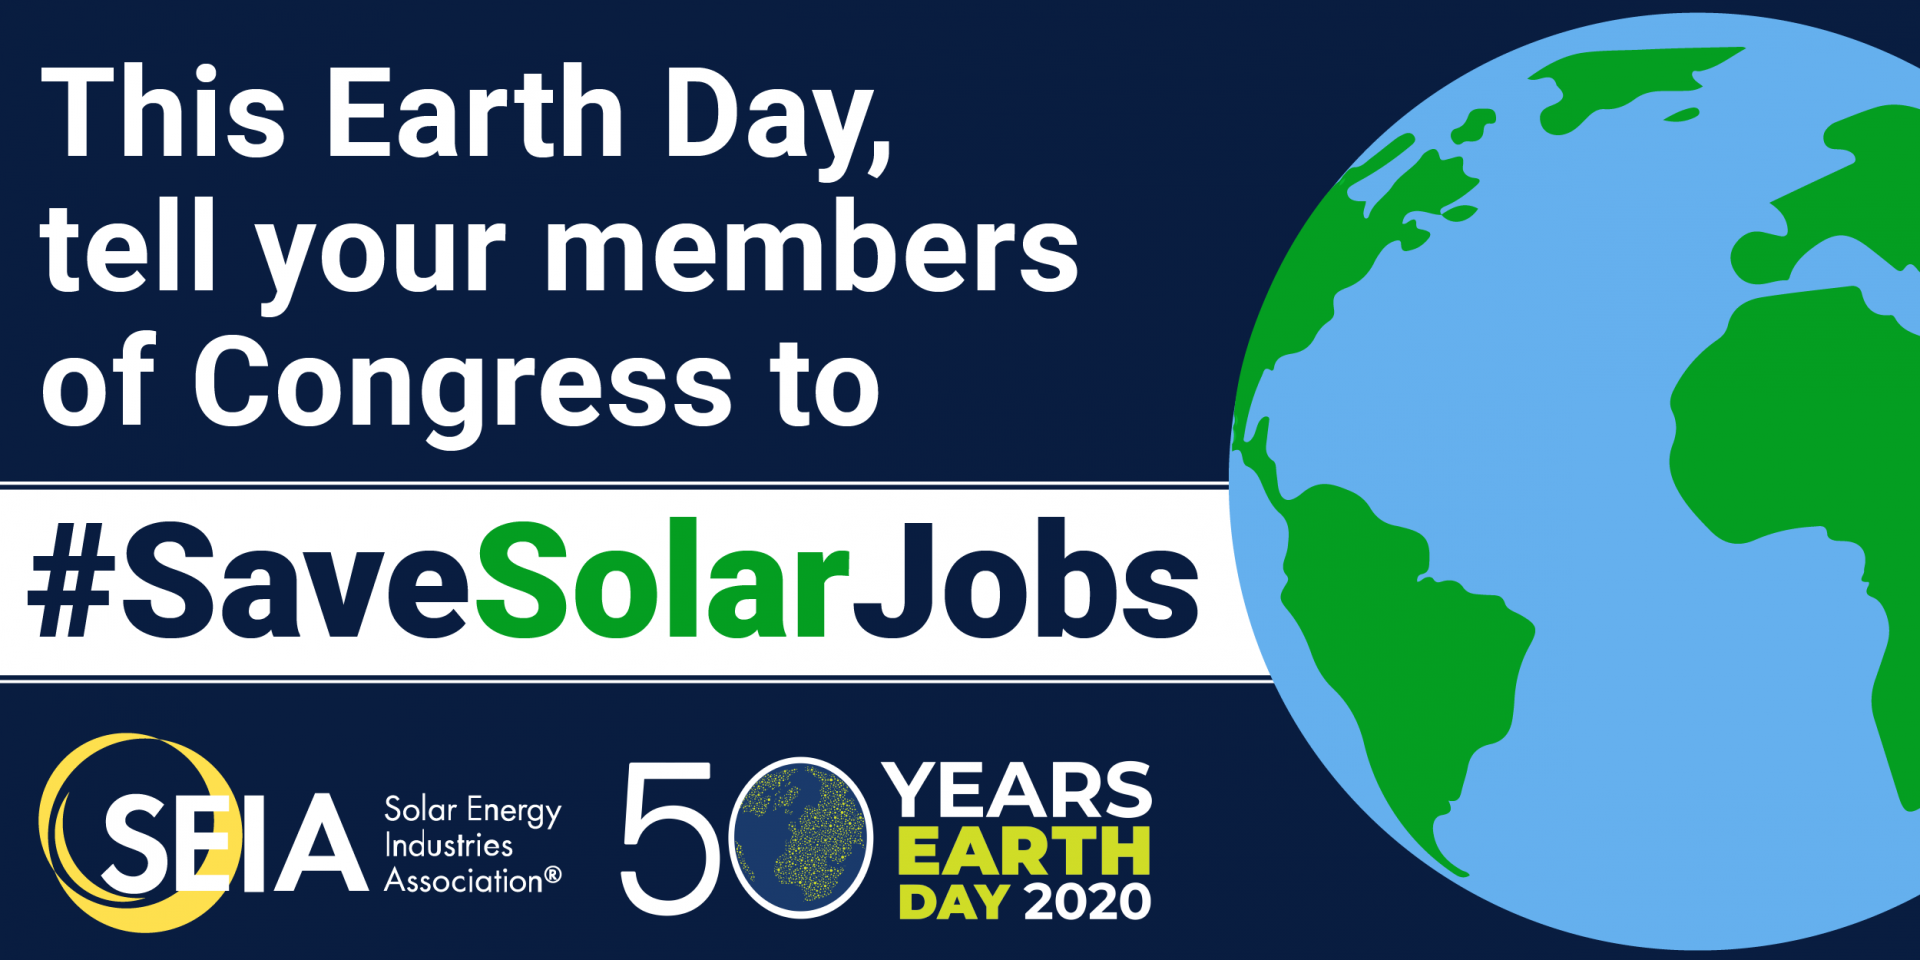 This earth day, save solar jobs